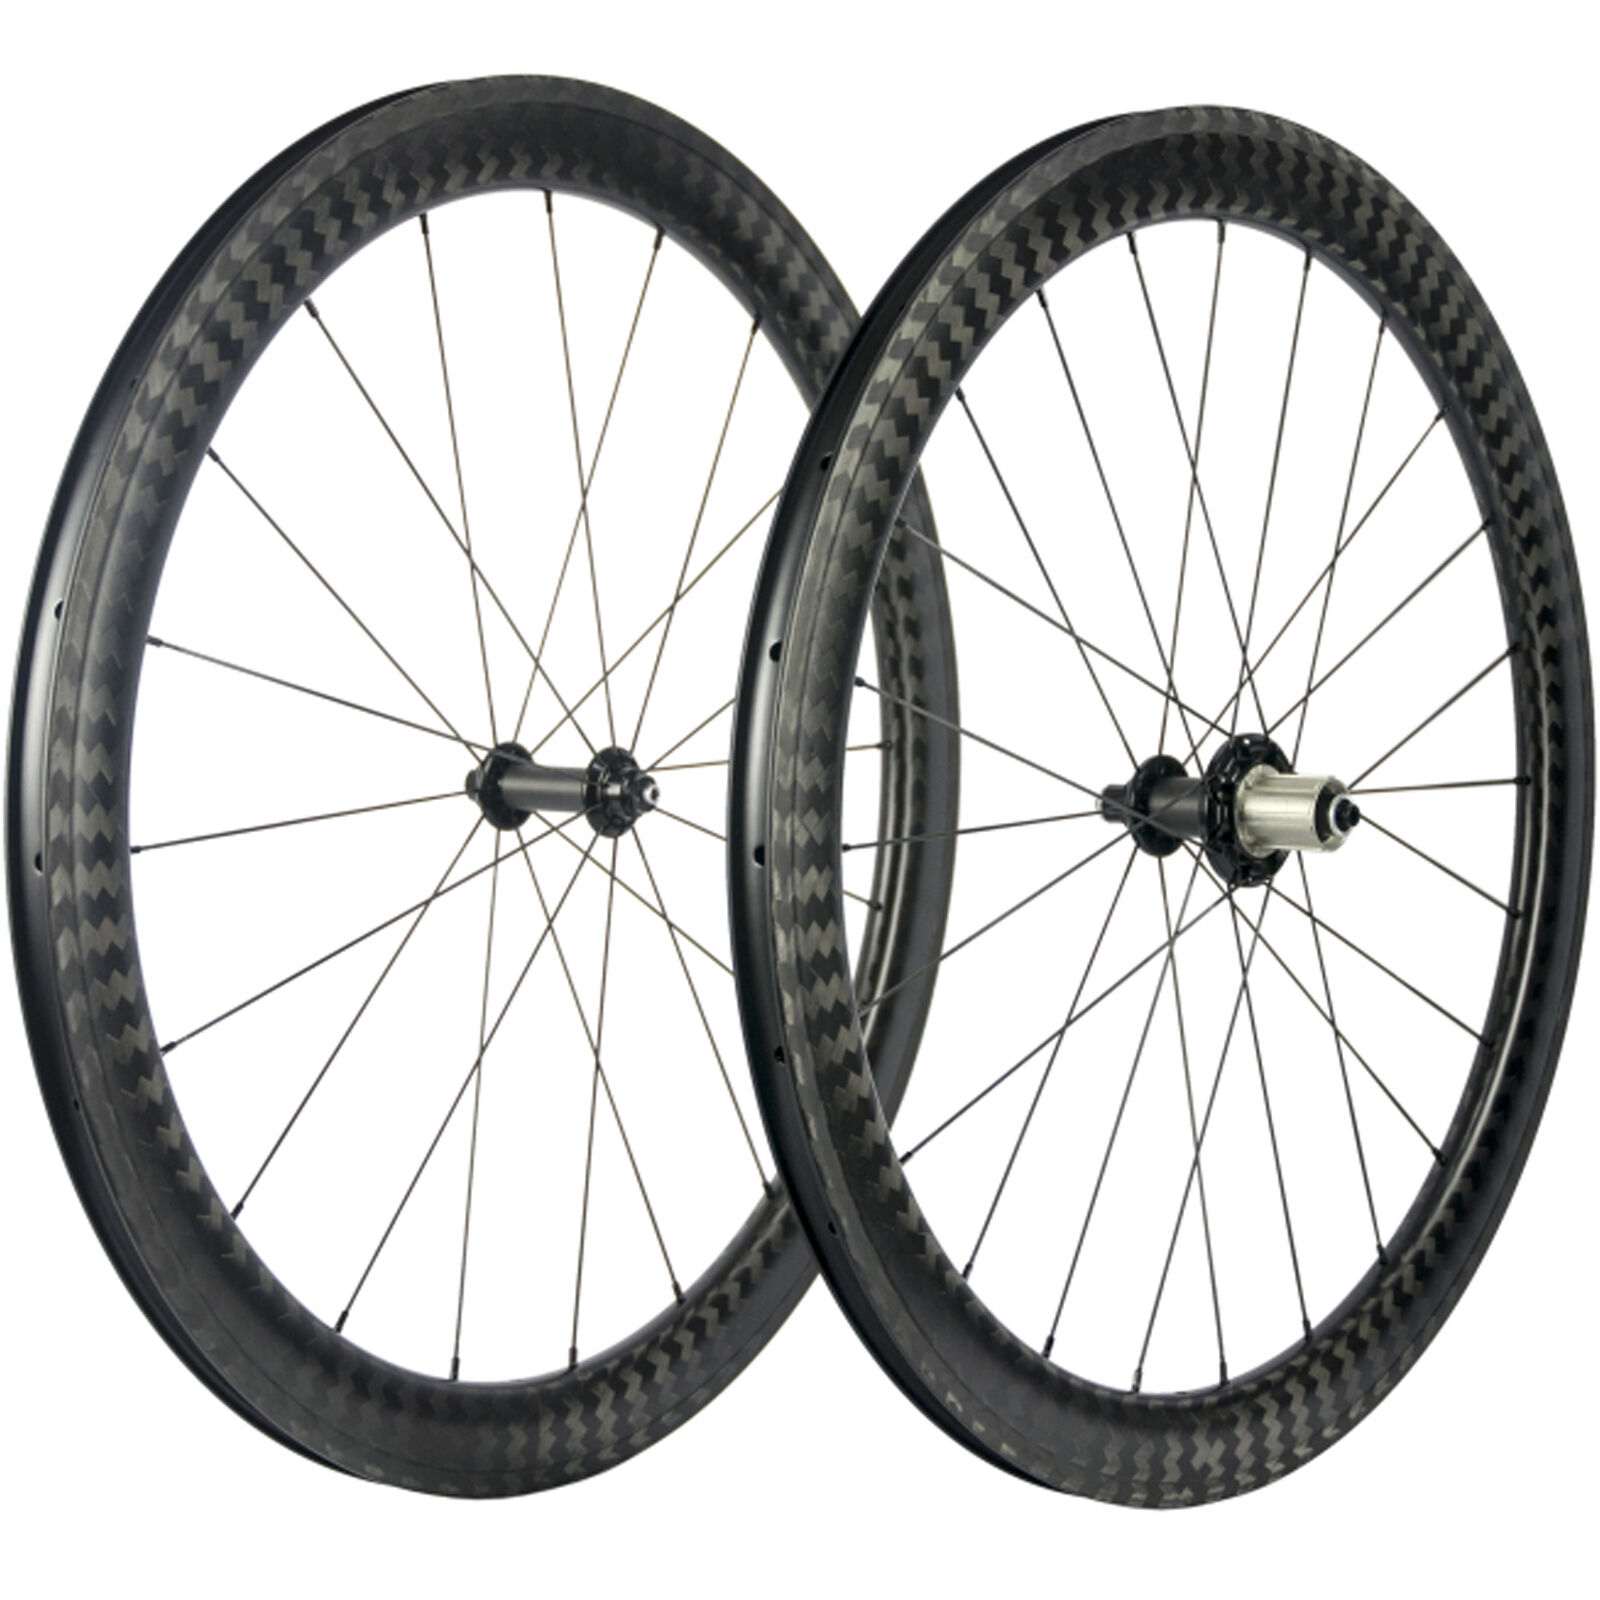 12K Twill Carbon Wheelset 25mm  Width Clincher Carbon Wheels 50mm Road Bike Wheel  cheapest price